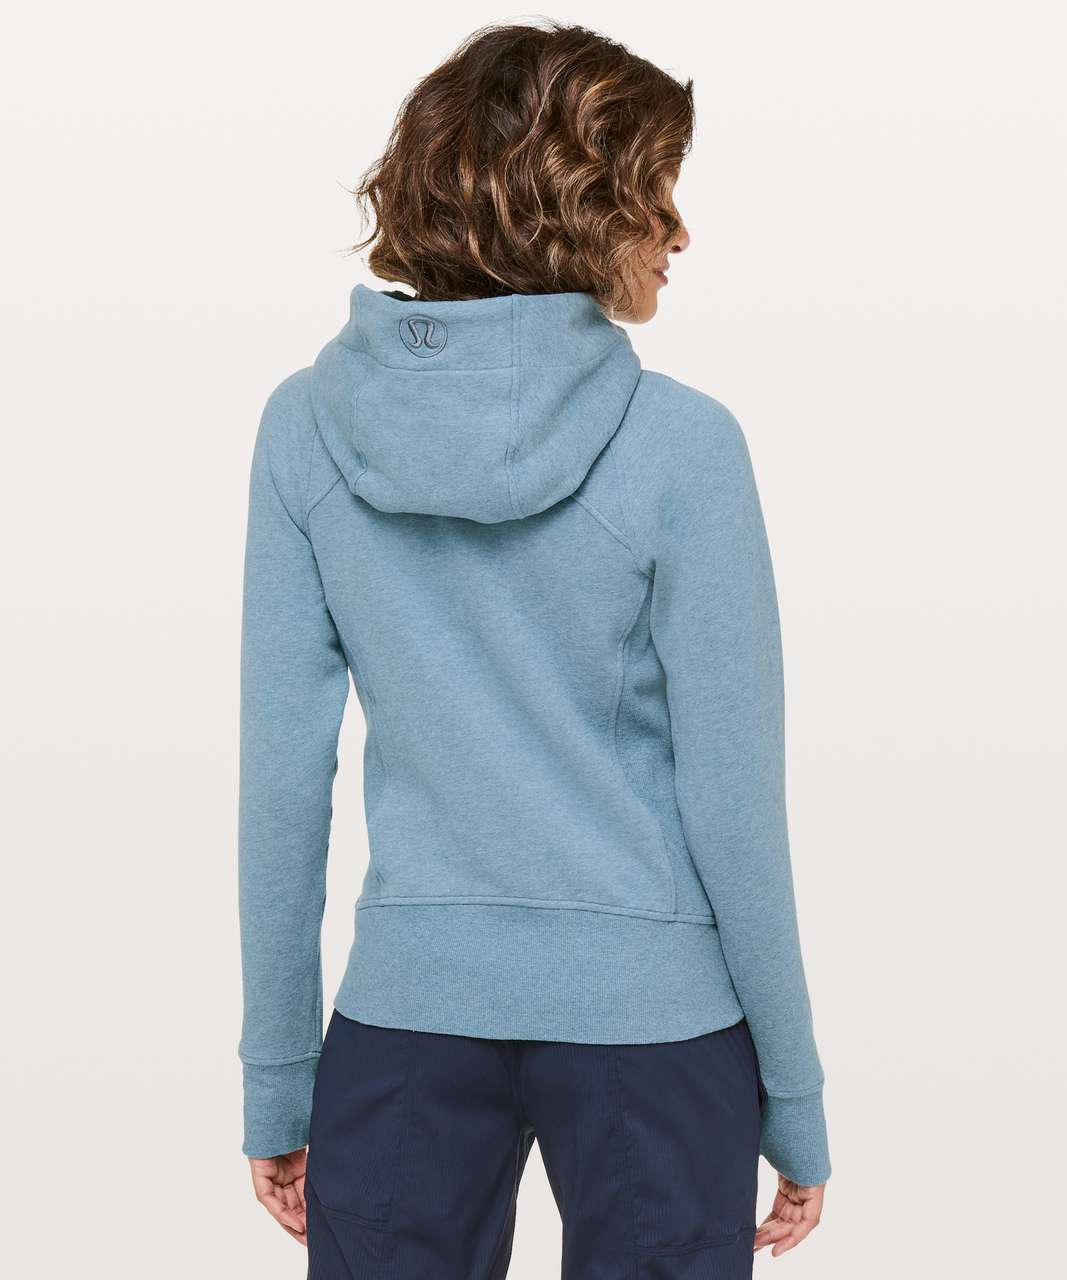 Lululemon Scuba Hoodie *Light Cotton Fleece - Heathered Illuminight